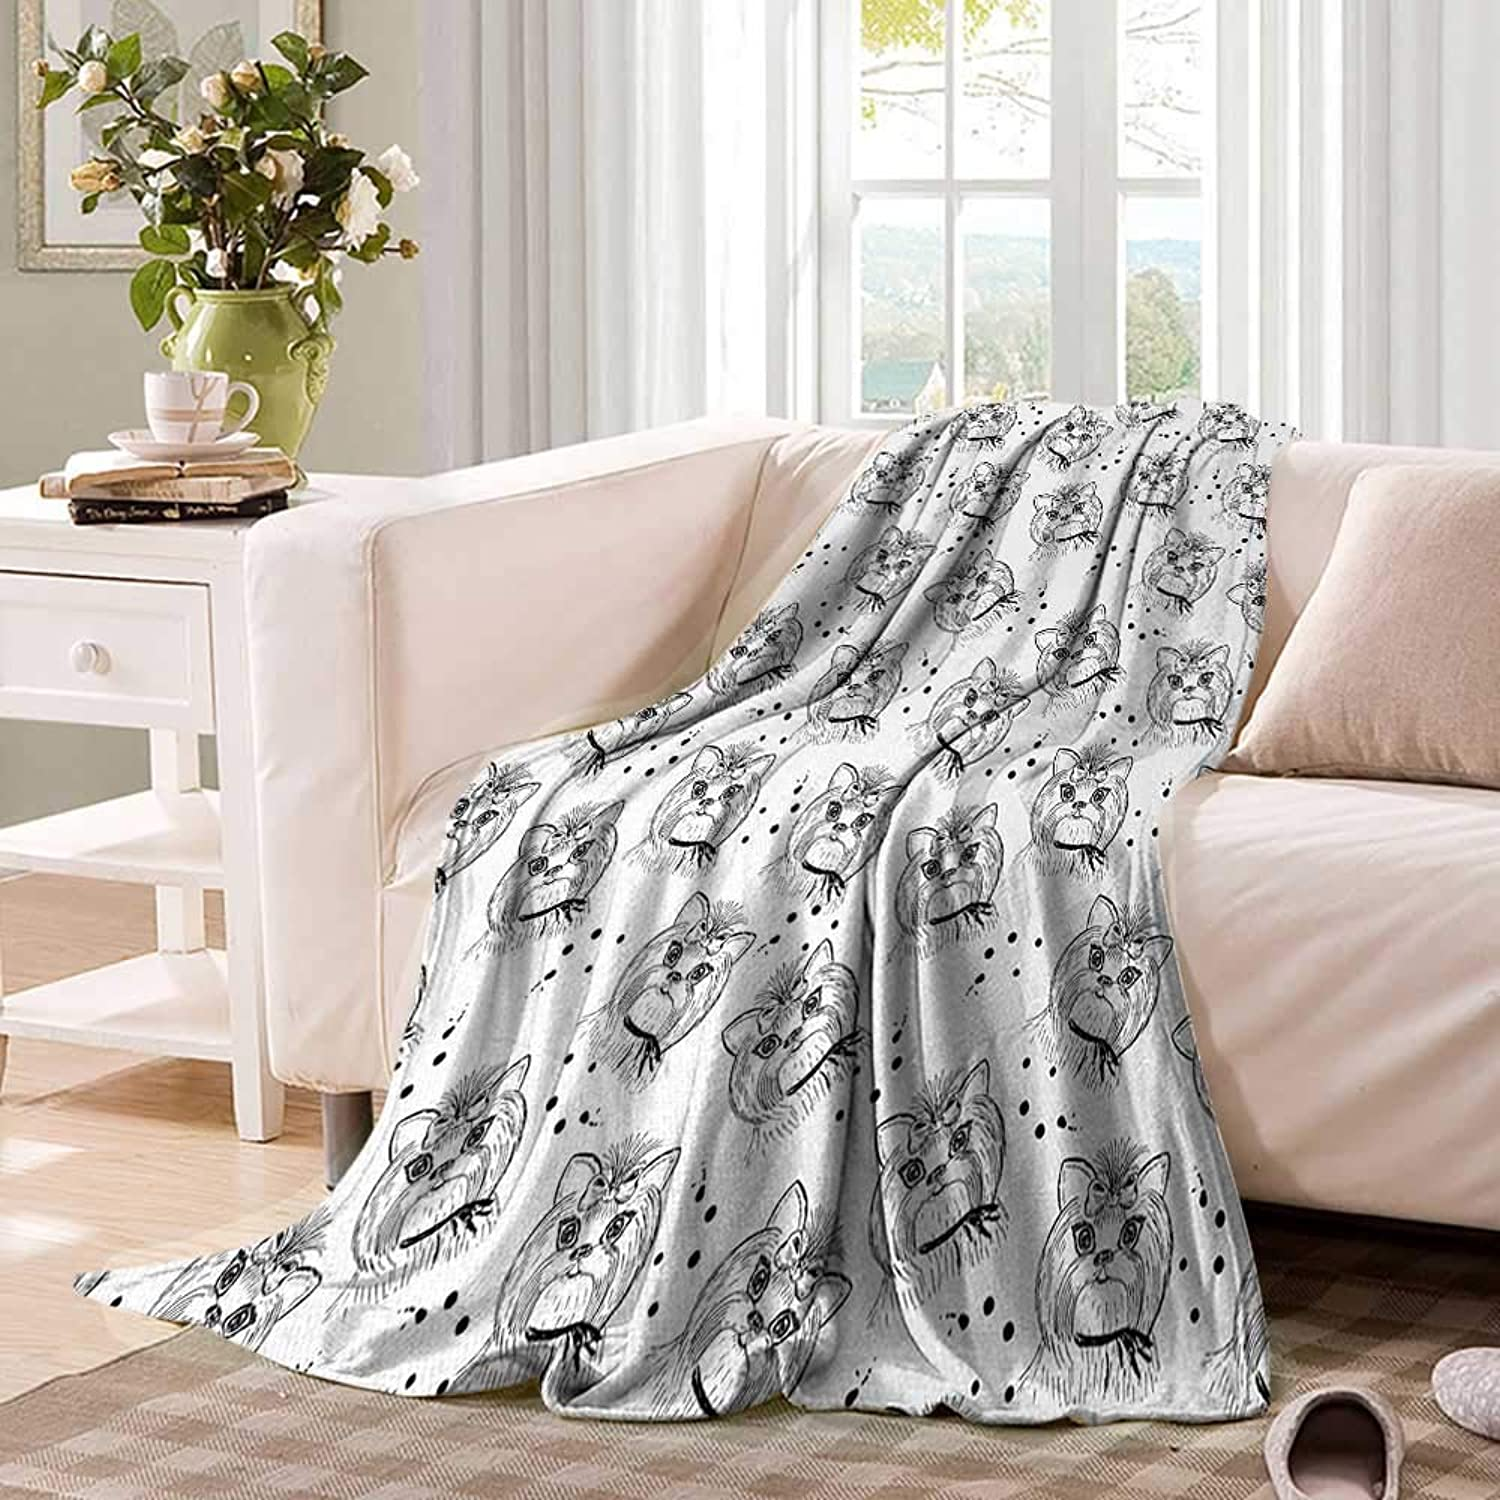 Black and WhiteSmall blanketCute Dog Pattern with Buckle and Collar Monochrome House Pet Illustrationthin Blanket 60 x50  Black White